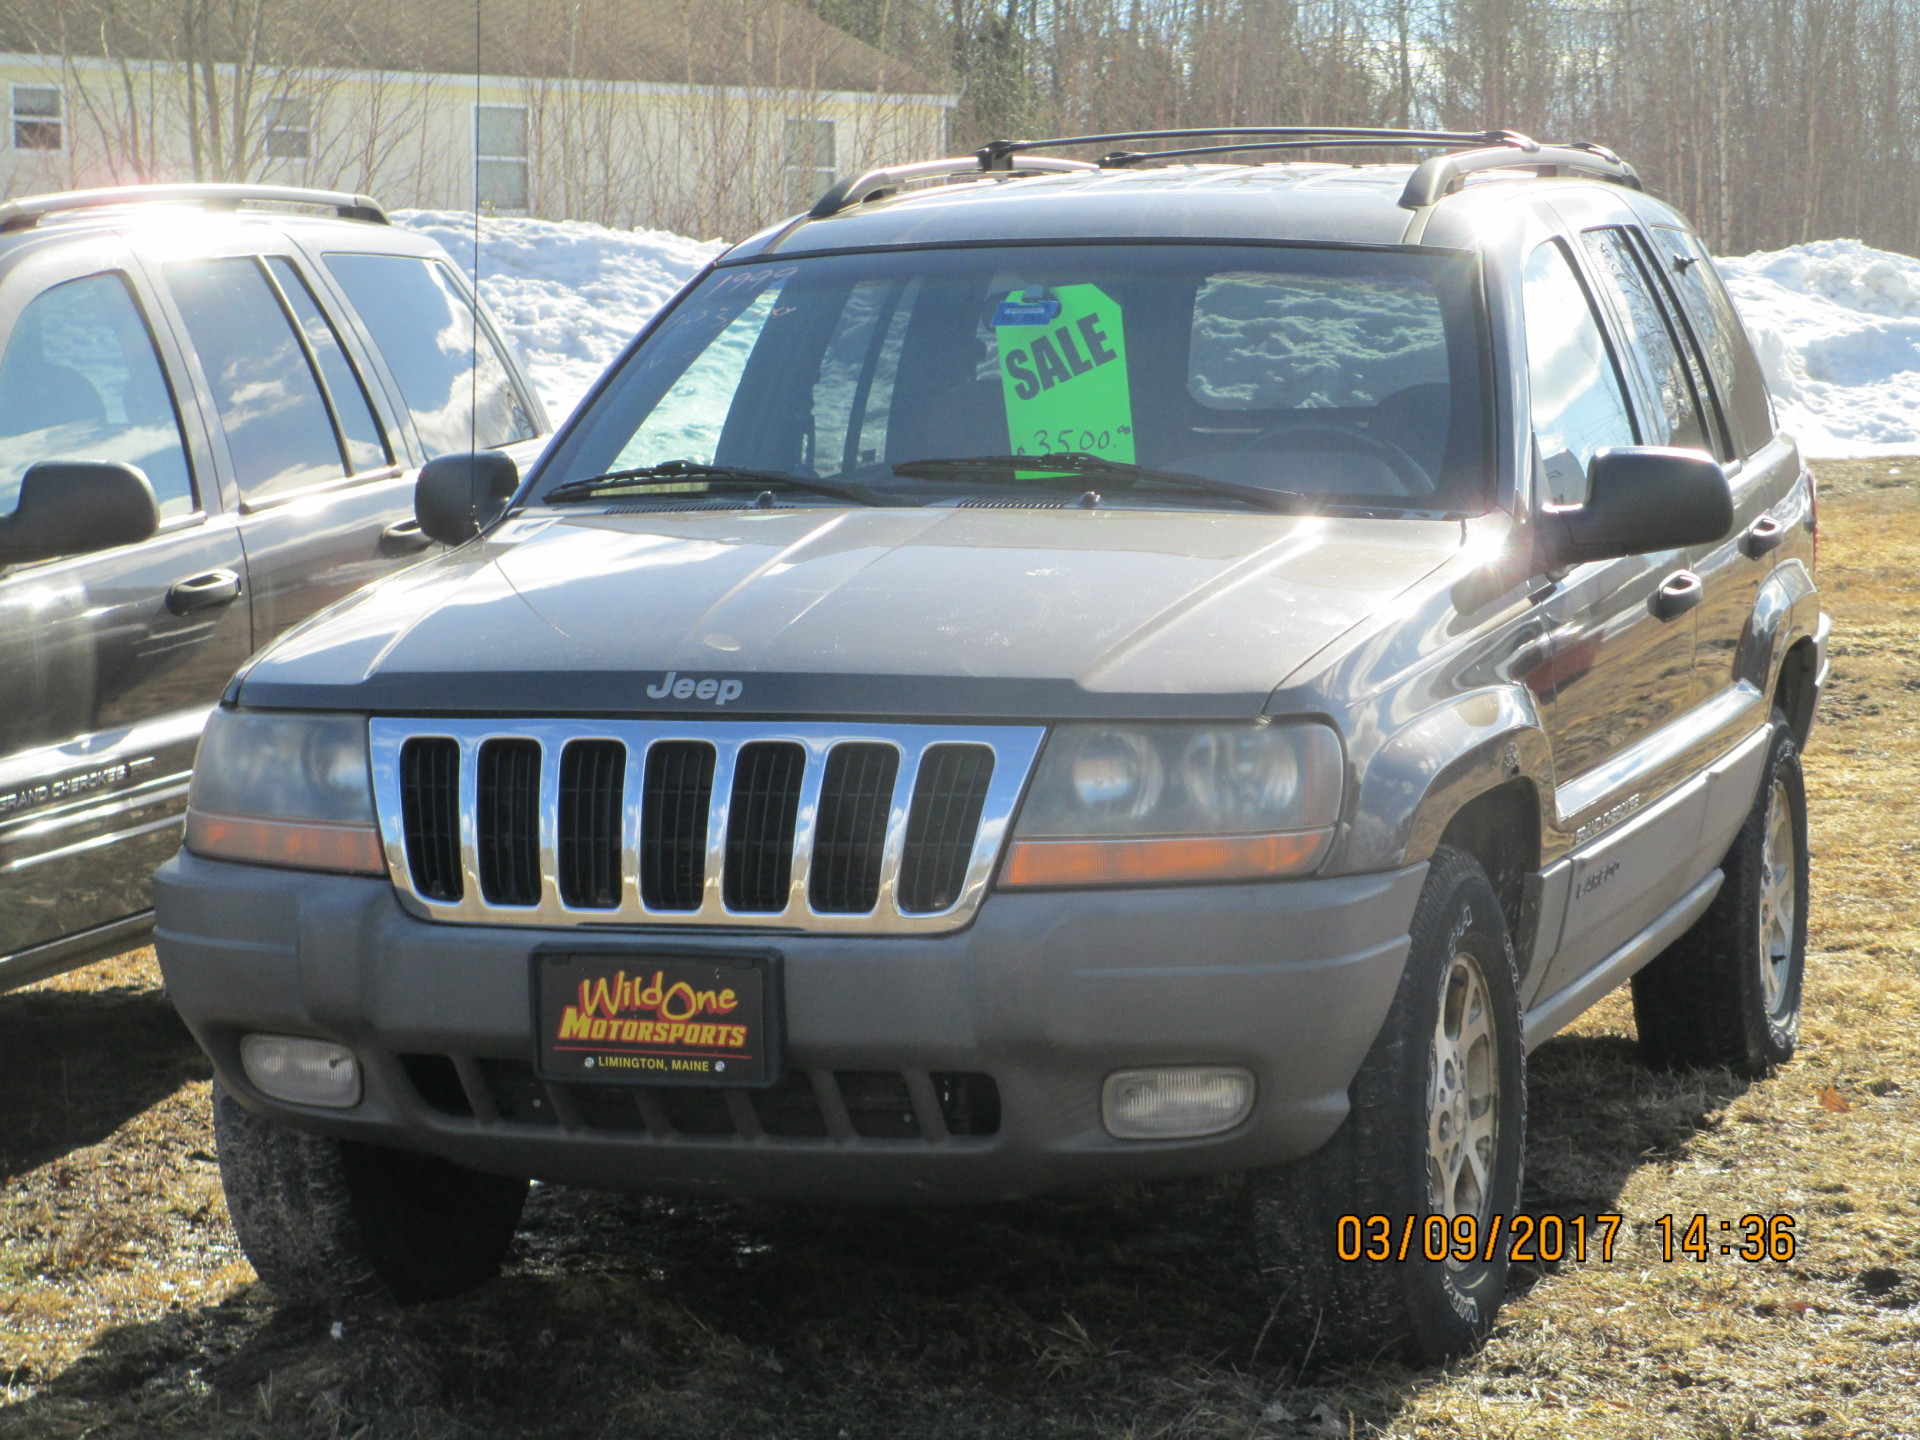 1999 Jeep Grand Cherokee - Brown